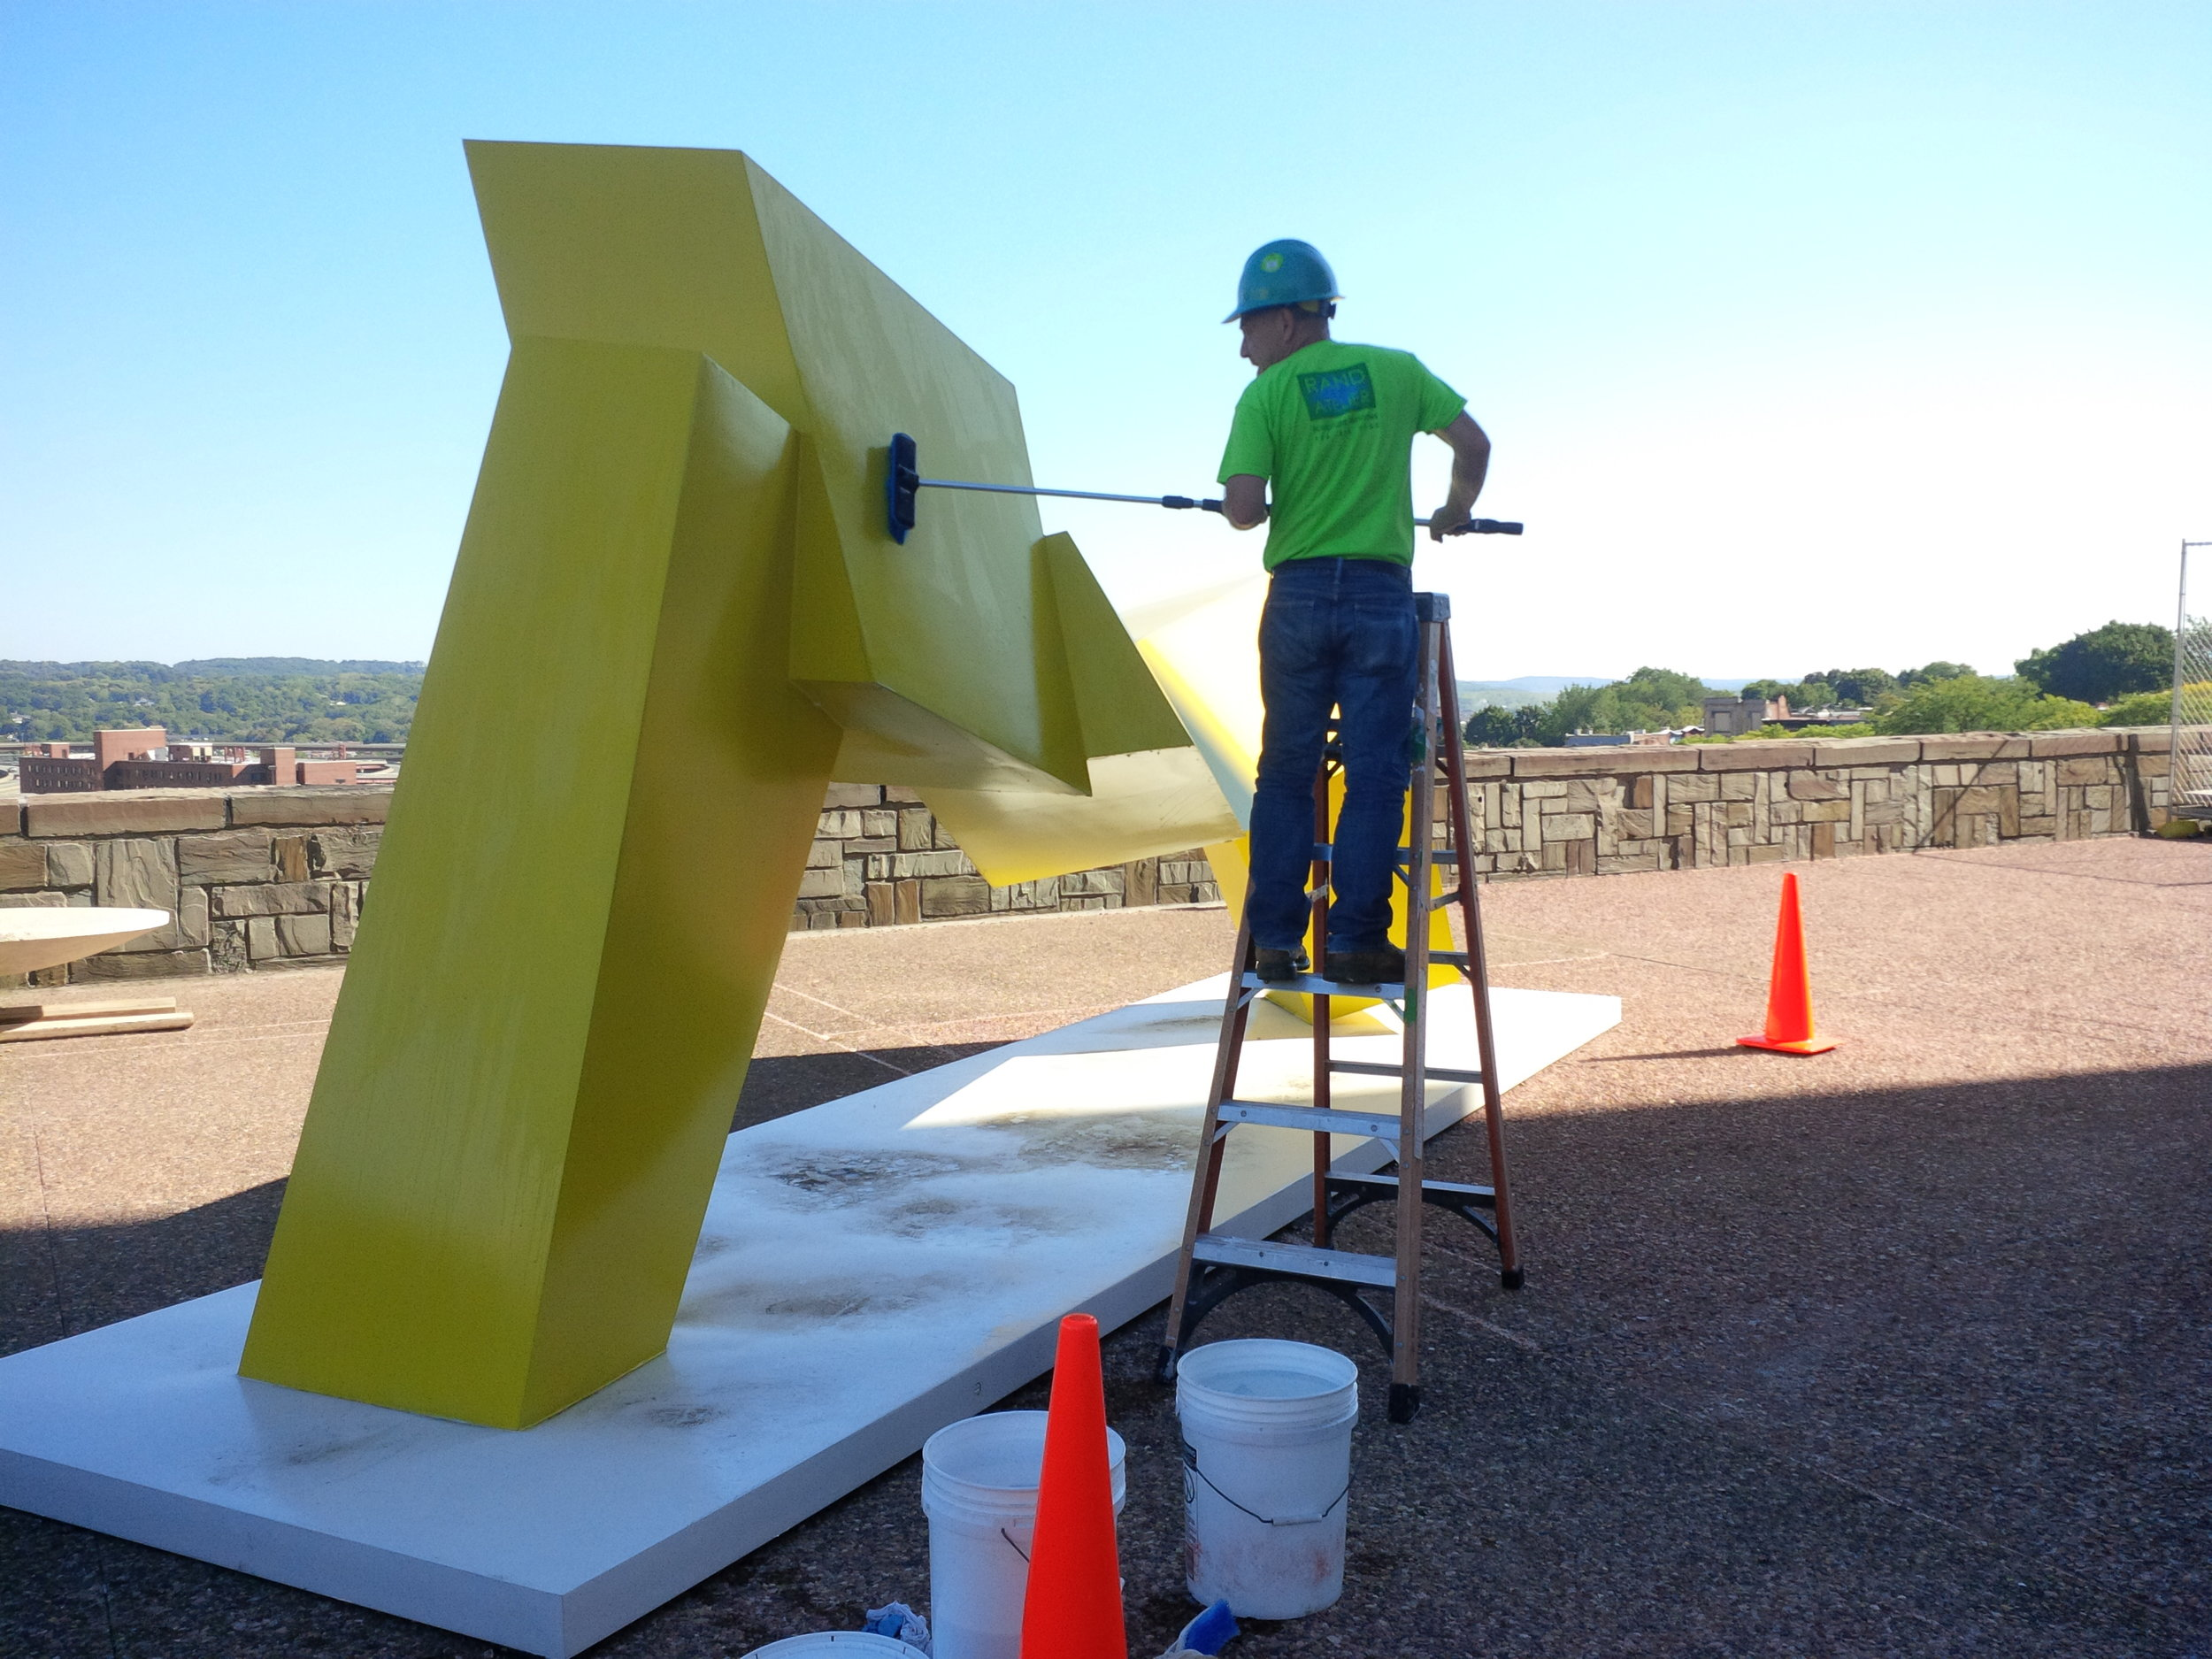 Care and Maintenance - A conservation-minded, custom maintenance plan is made by Monumenta's staff for each artwork based on need and material type. Work is undertaken by trained Conservation Technicians following all pertinent safety protocols.